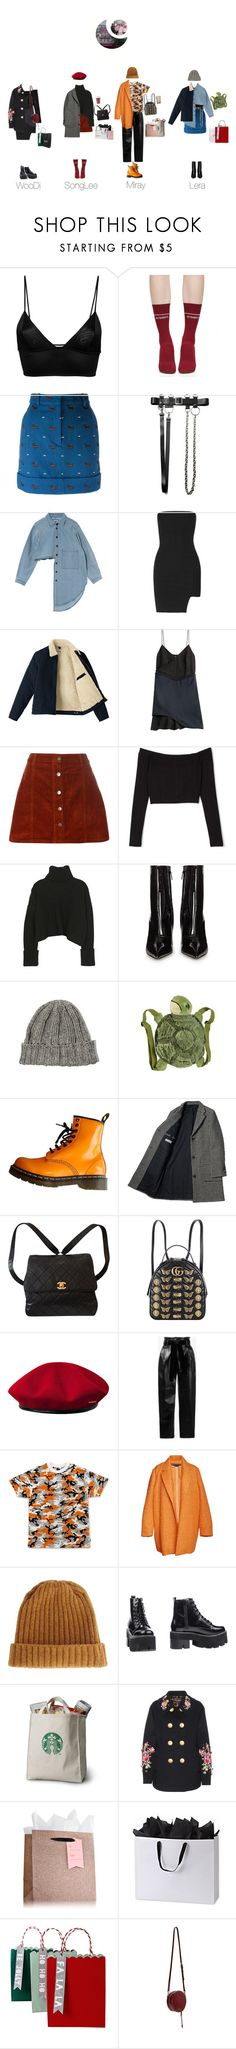 """Christmas Shopping – 9Crush"" by crsh9girlgang ❤ liked on Polyvore featuring CÉLINE, Fleur du Mal, Vetements, Thom Browne, Anthony Vaccarello, 3.1 Phillip Lim, Dorothy Perkins, Balenciaga, Beams+ and Pillow Pets"